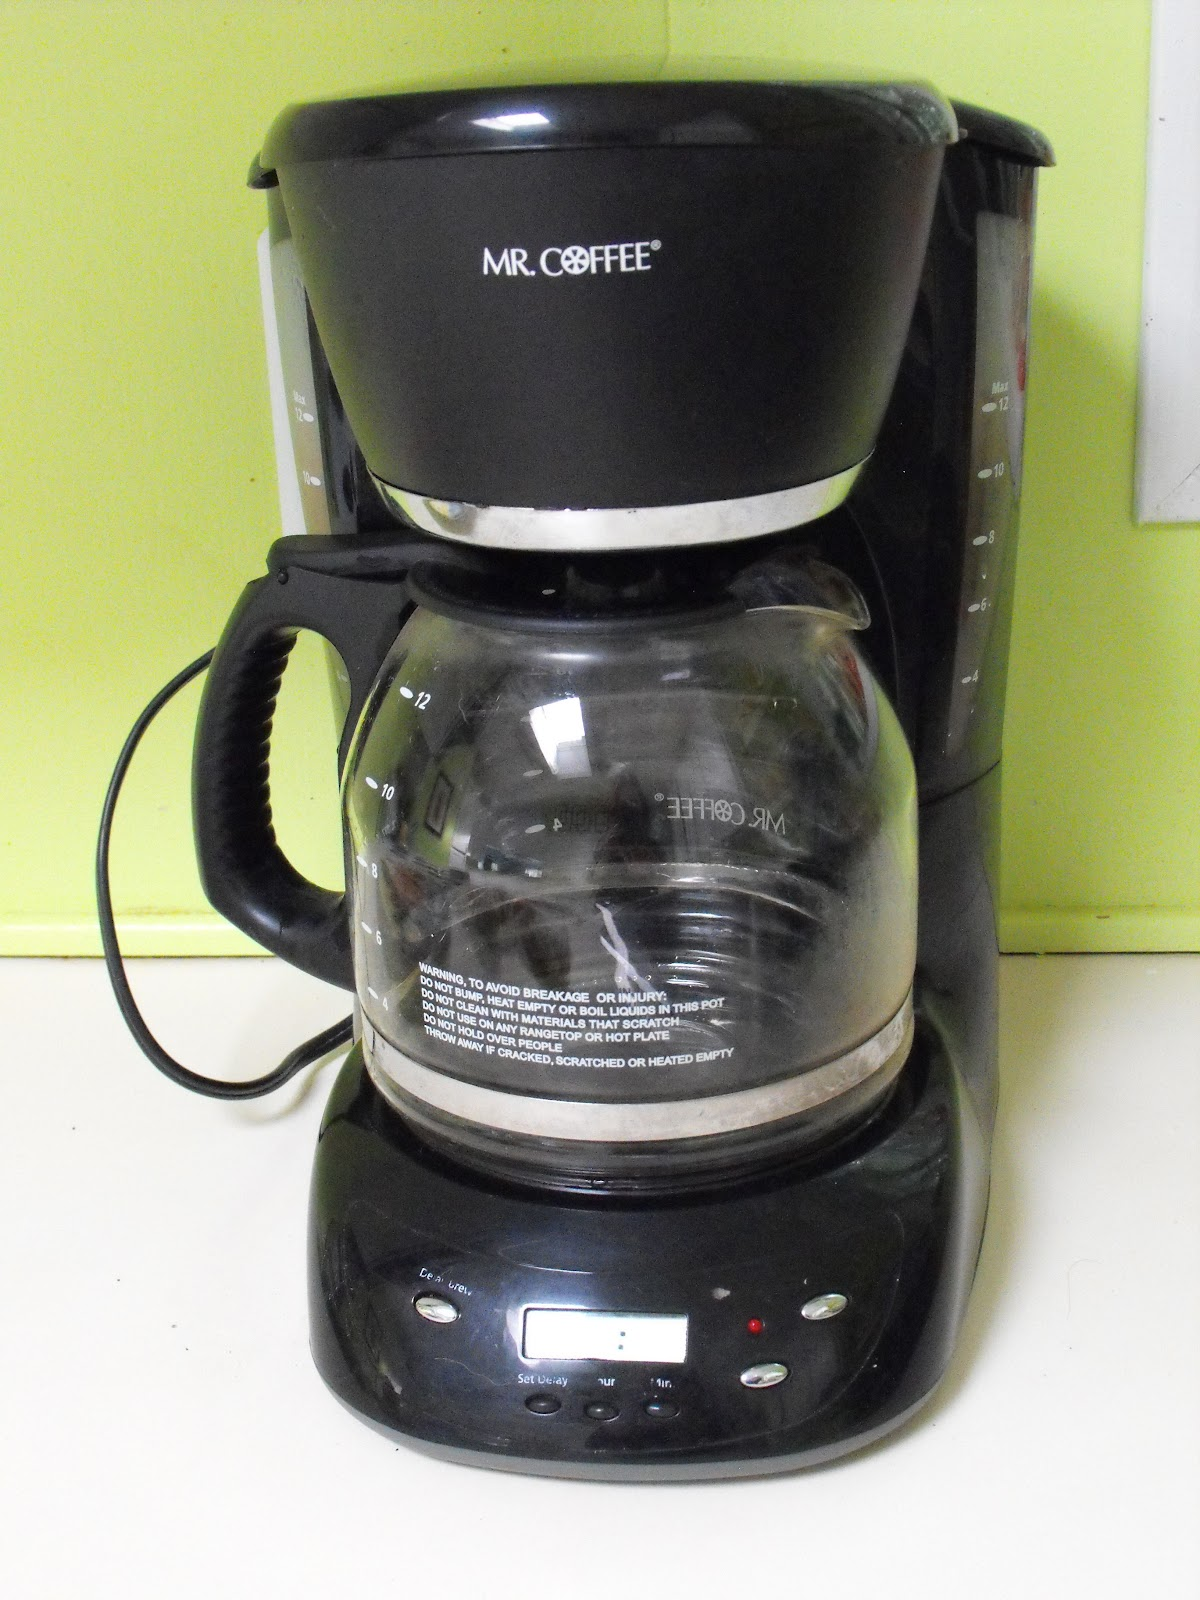 Coffee Pot Stains Cleaning : Green Clean your Coffee Pot - Crafty Little Gnome